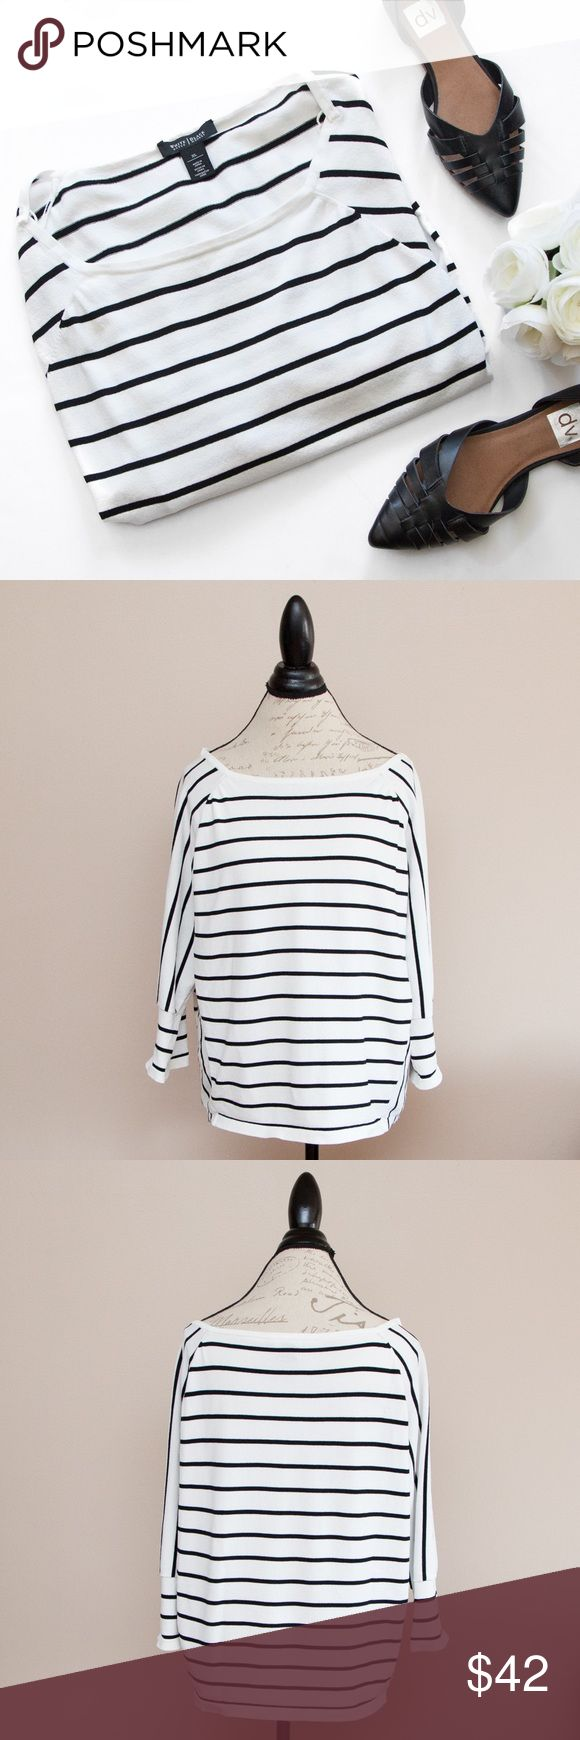 """White House Black Market Striped Dolman Blouse Beautiful White House Black Market blouse perfect for spring and summer! Horizontal and vertical stripes. 3/4 dolman sleeves. 65% nylon, 35% nylon. Measures approx. 23.5"""" armpit to armpit and approx. 23"""" L. Has 2 teeny tiny pulls and there's a little flap on the right shoulder that isn't fully stitched down (see photos); otherwise excellent pre-loved condition!  🚫no trades 🚫no modeling ✅dog friendly/🚭smoke free home ✅reasonable offers ✅bundle…"""